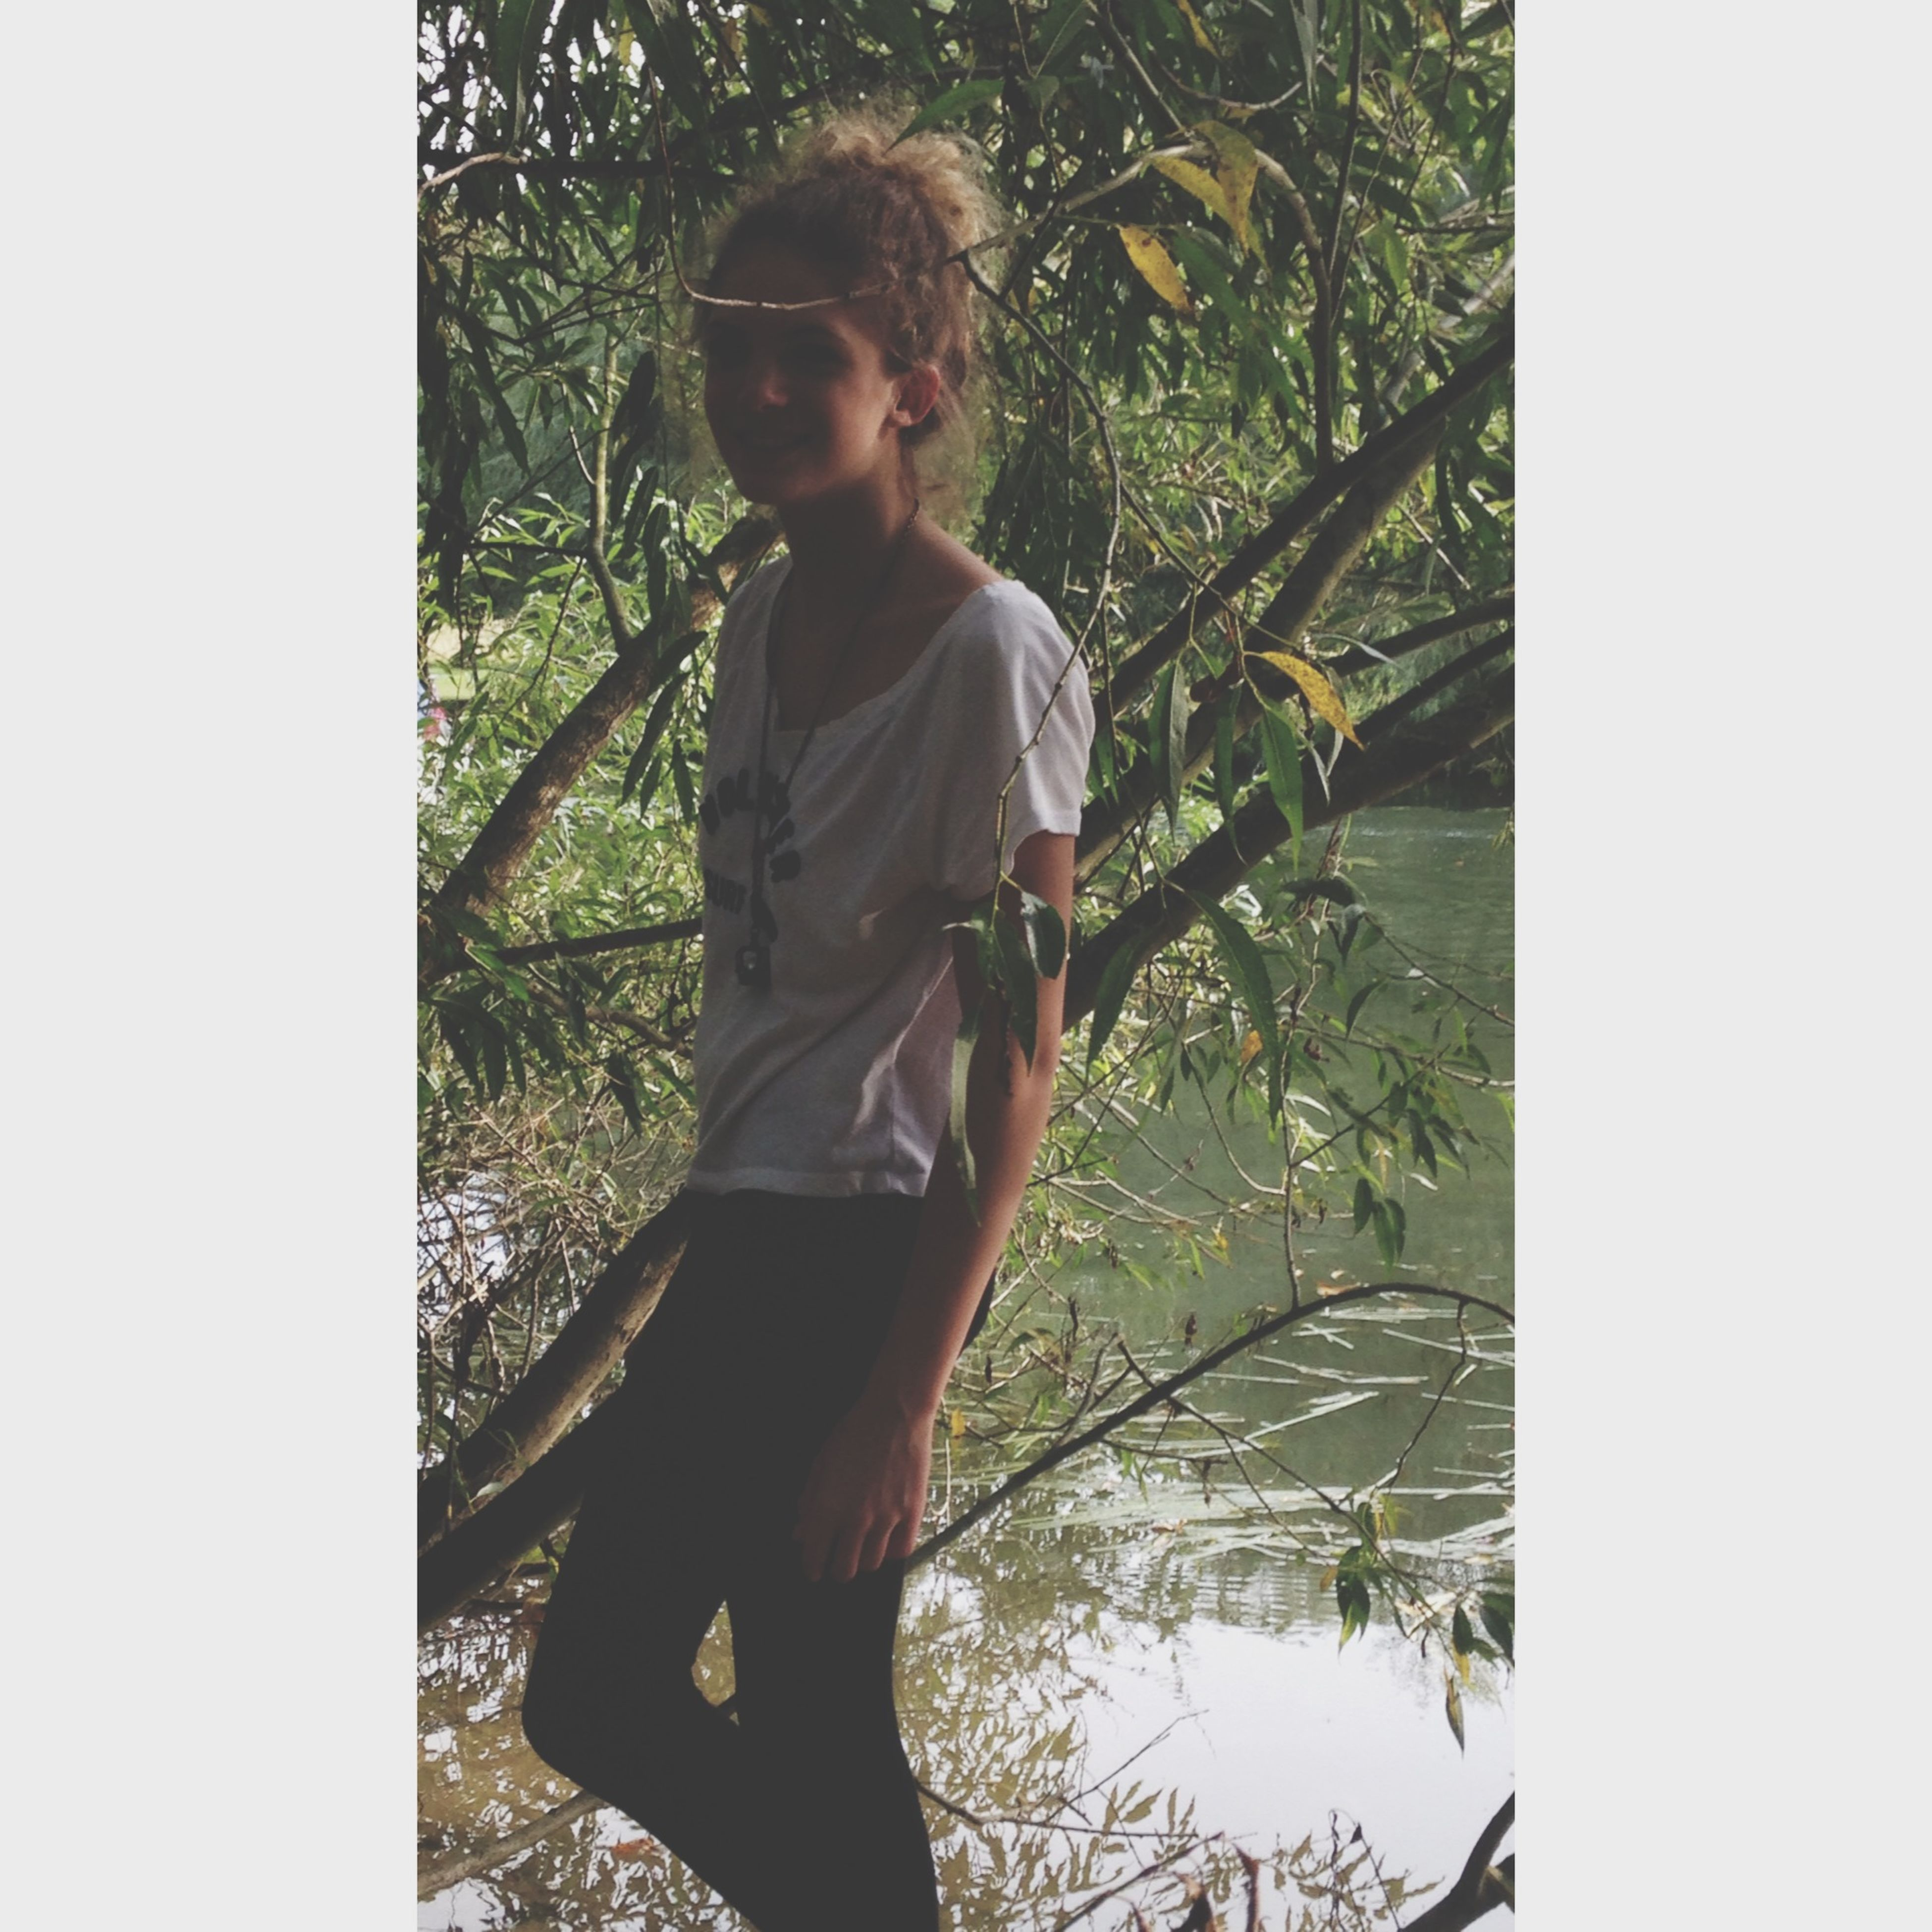 transfer print, tree, lifestyles, young adult, leisure activity, auto post production filter, person, standing, casual clothing, looking at camera, full length, portrait, front view, three quarter length, young women, branch, nature, day